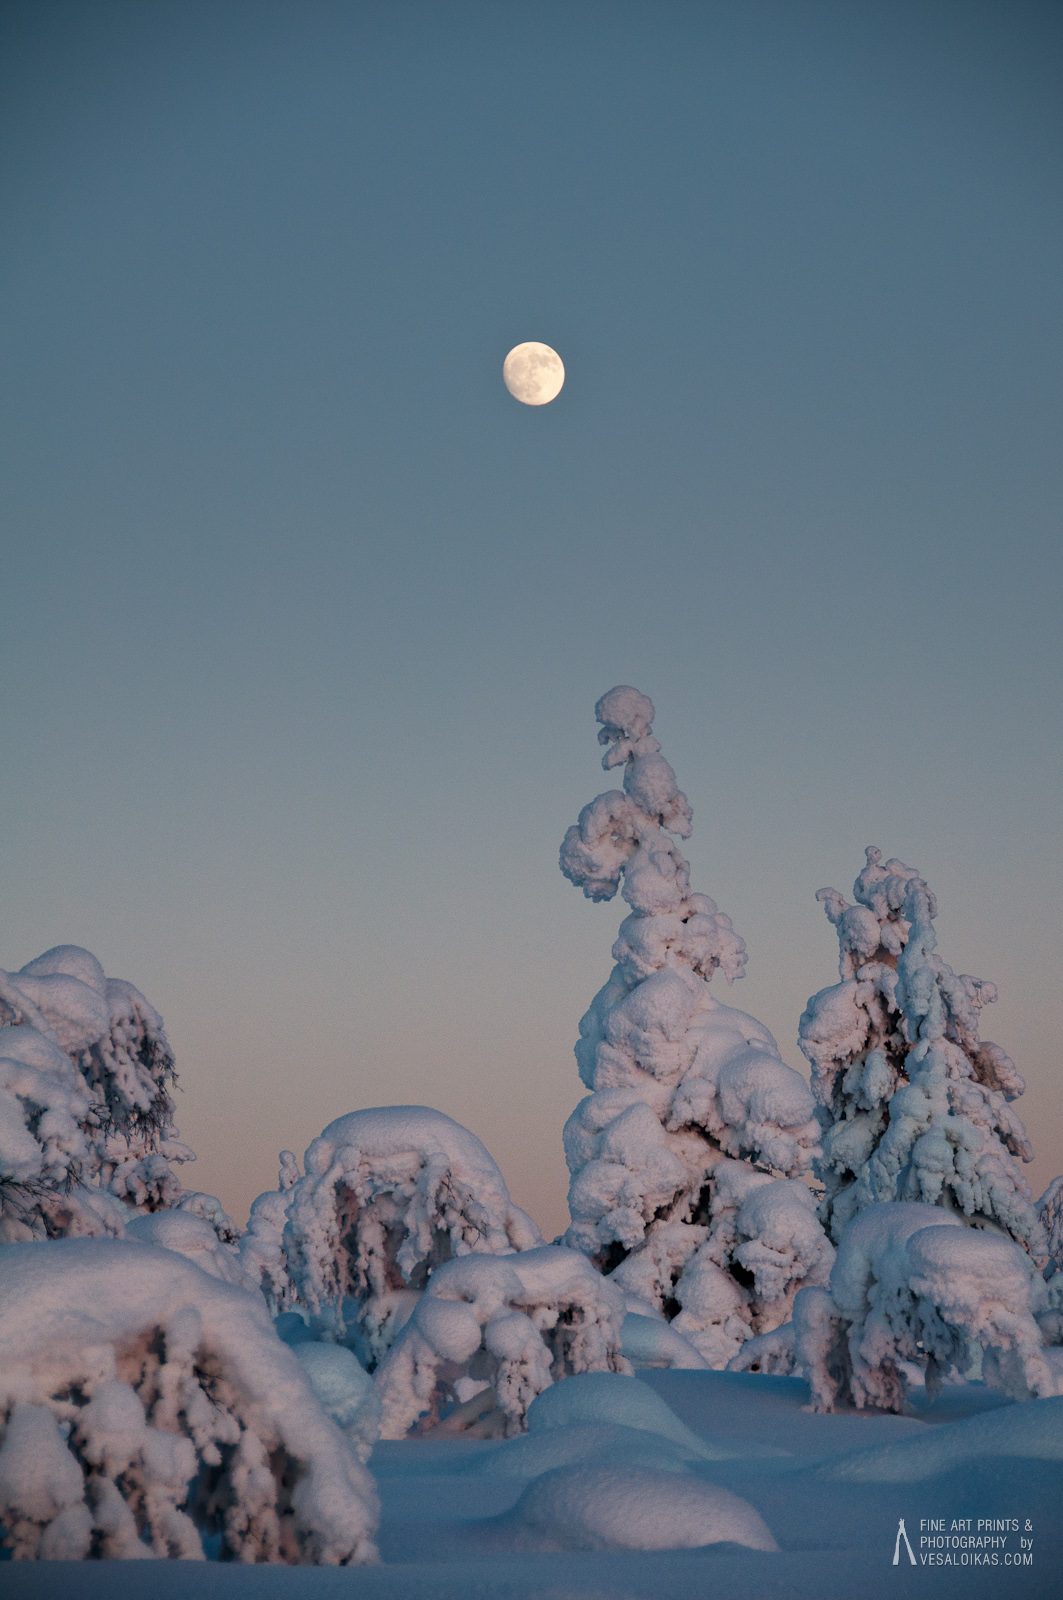 Snow covered spruce trees in the tundra in Lapland, Finland. The sun was setting as the moon was rising. The trees reflect the sunlight as does the moon.